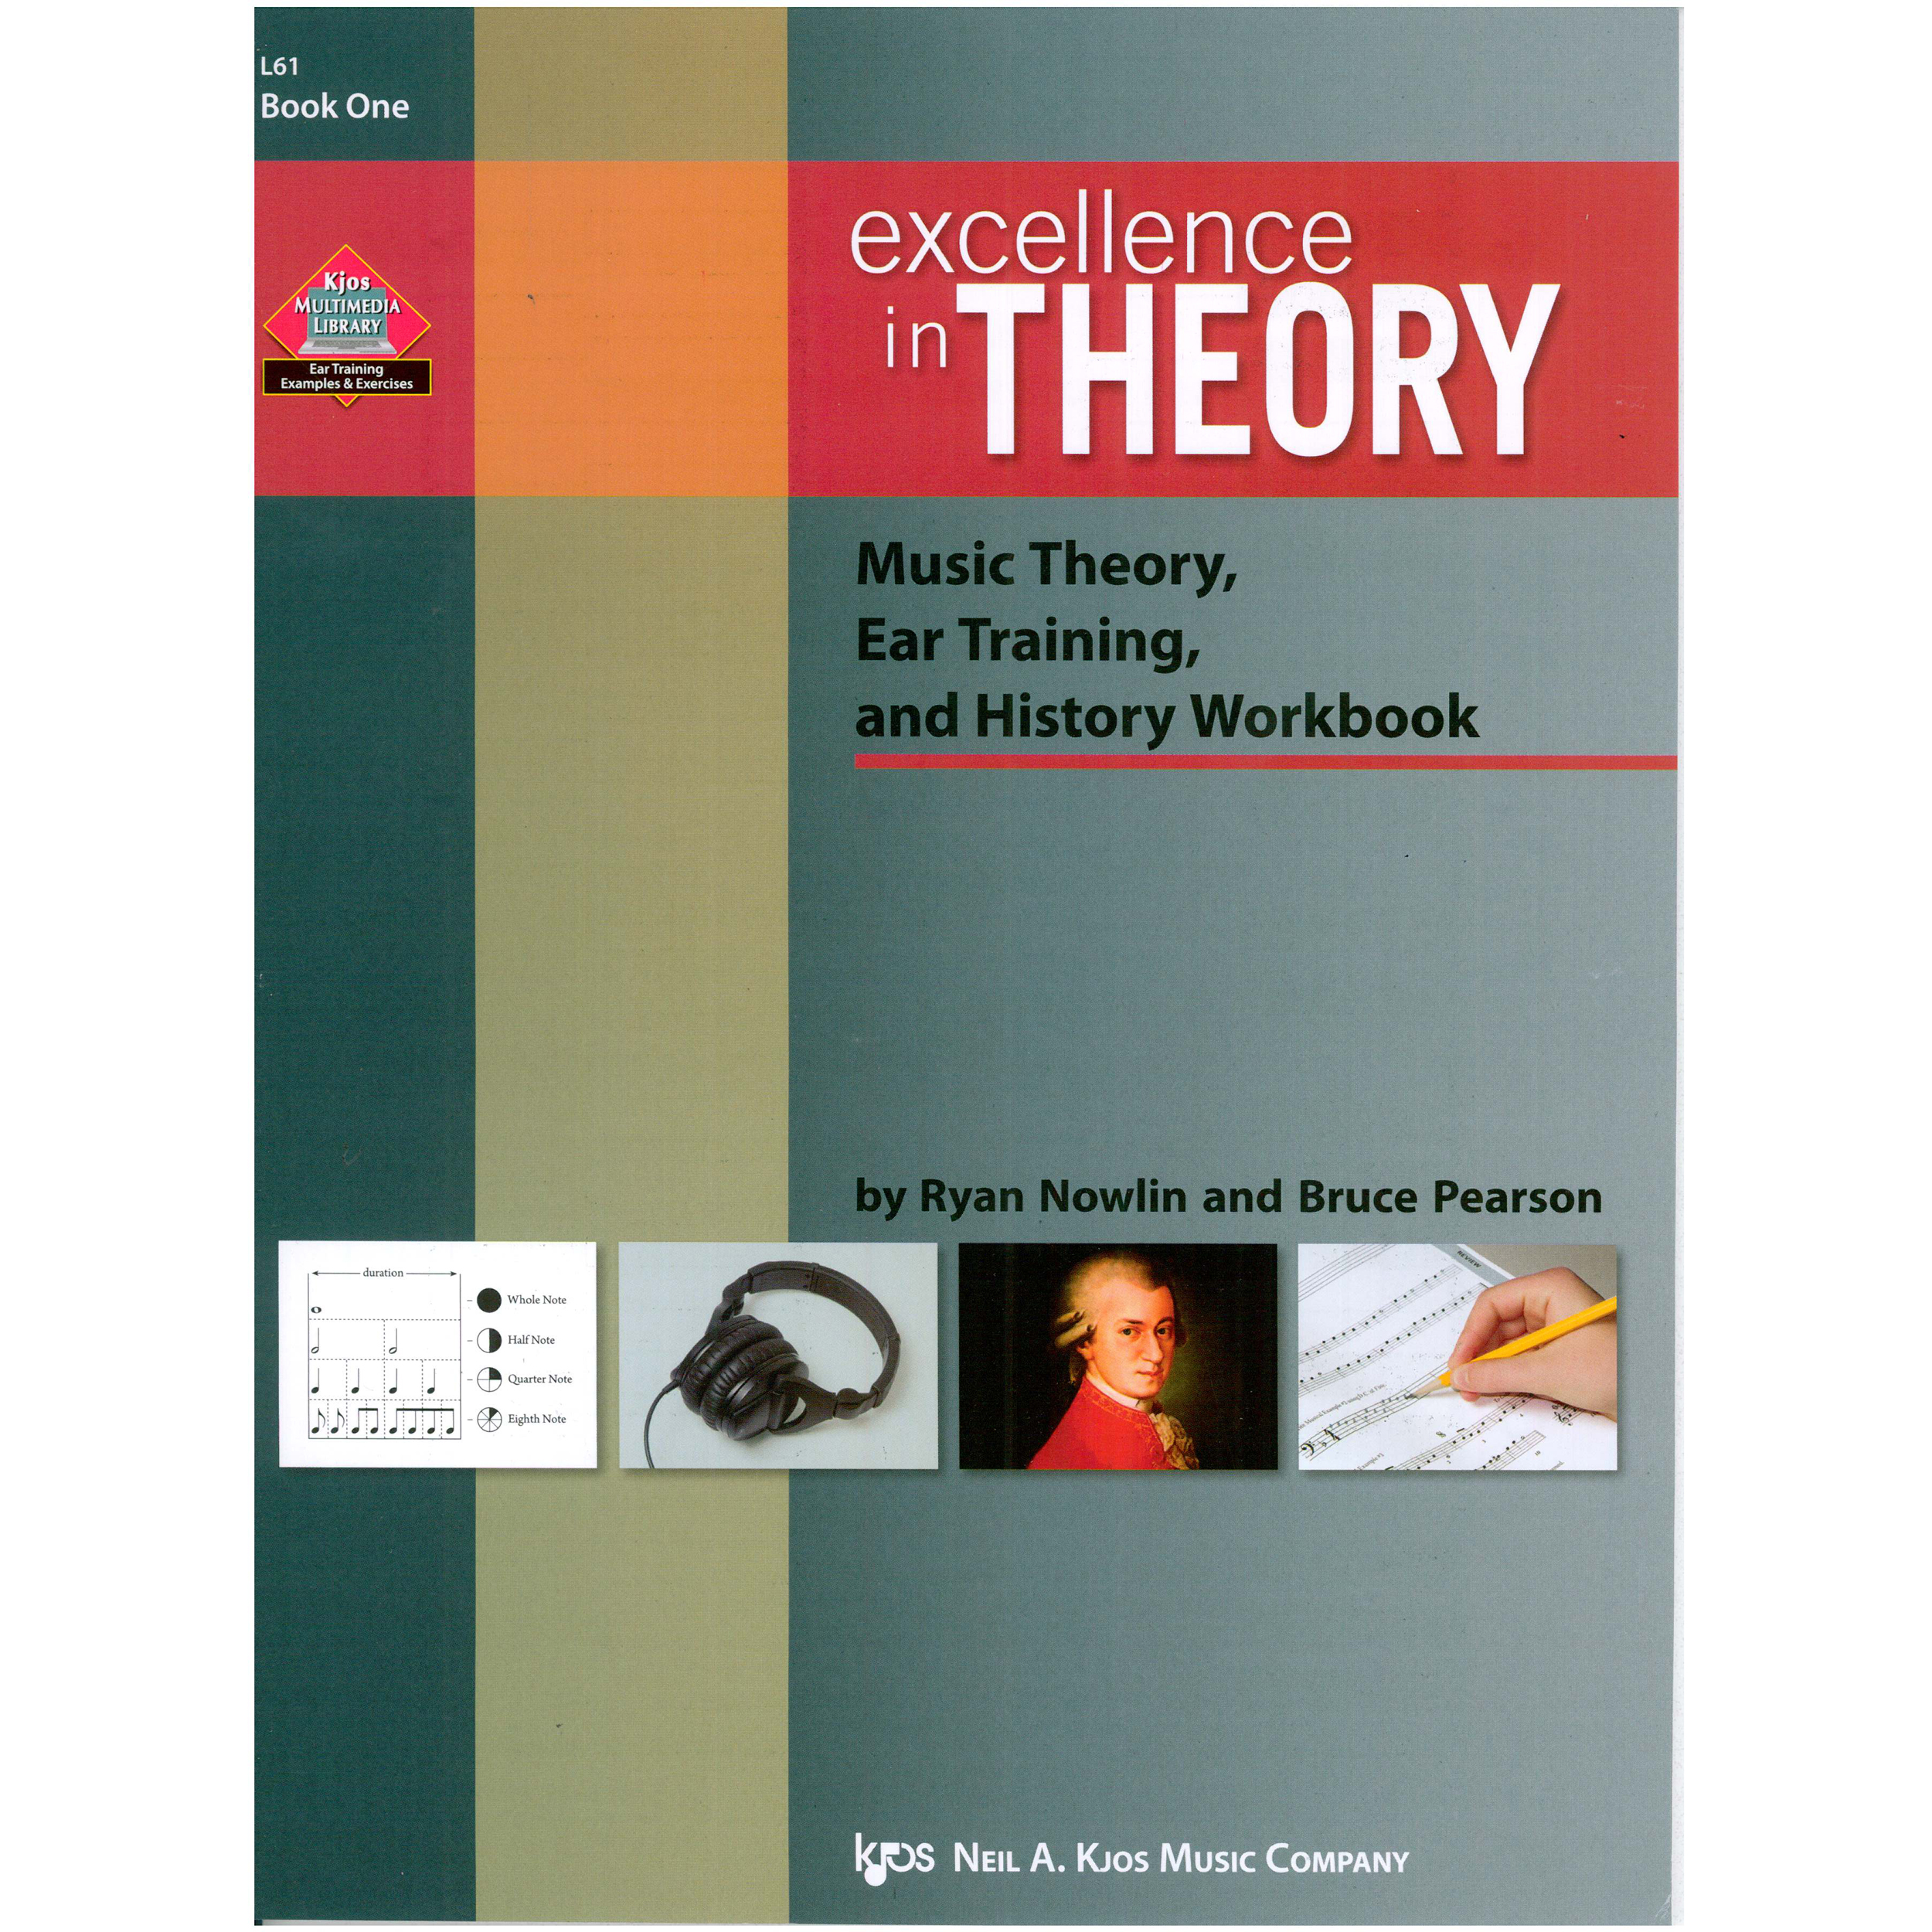 Excellence in Theory (Book 1) by Ryan Nowlin and Bruce Pearson